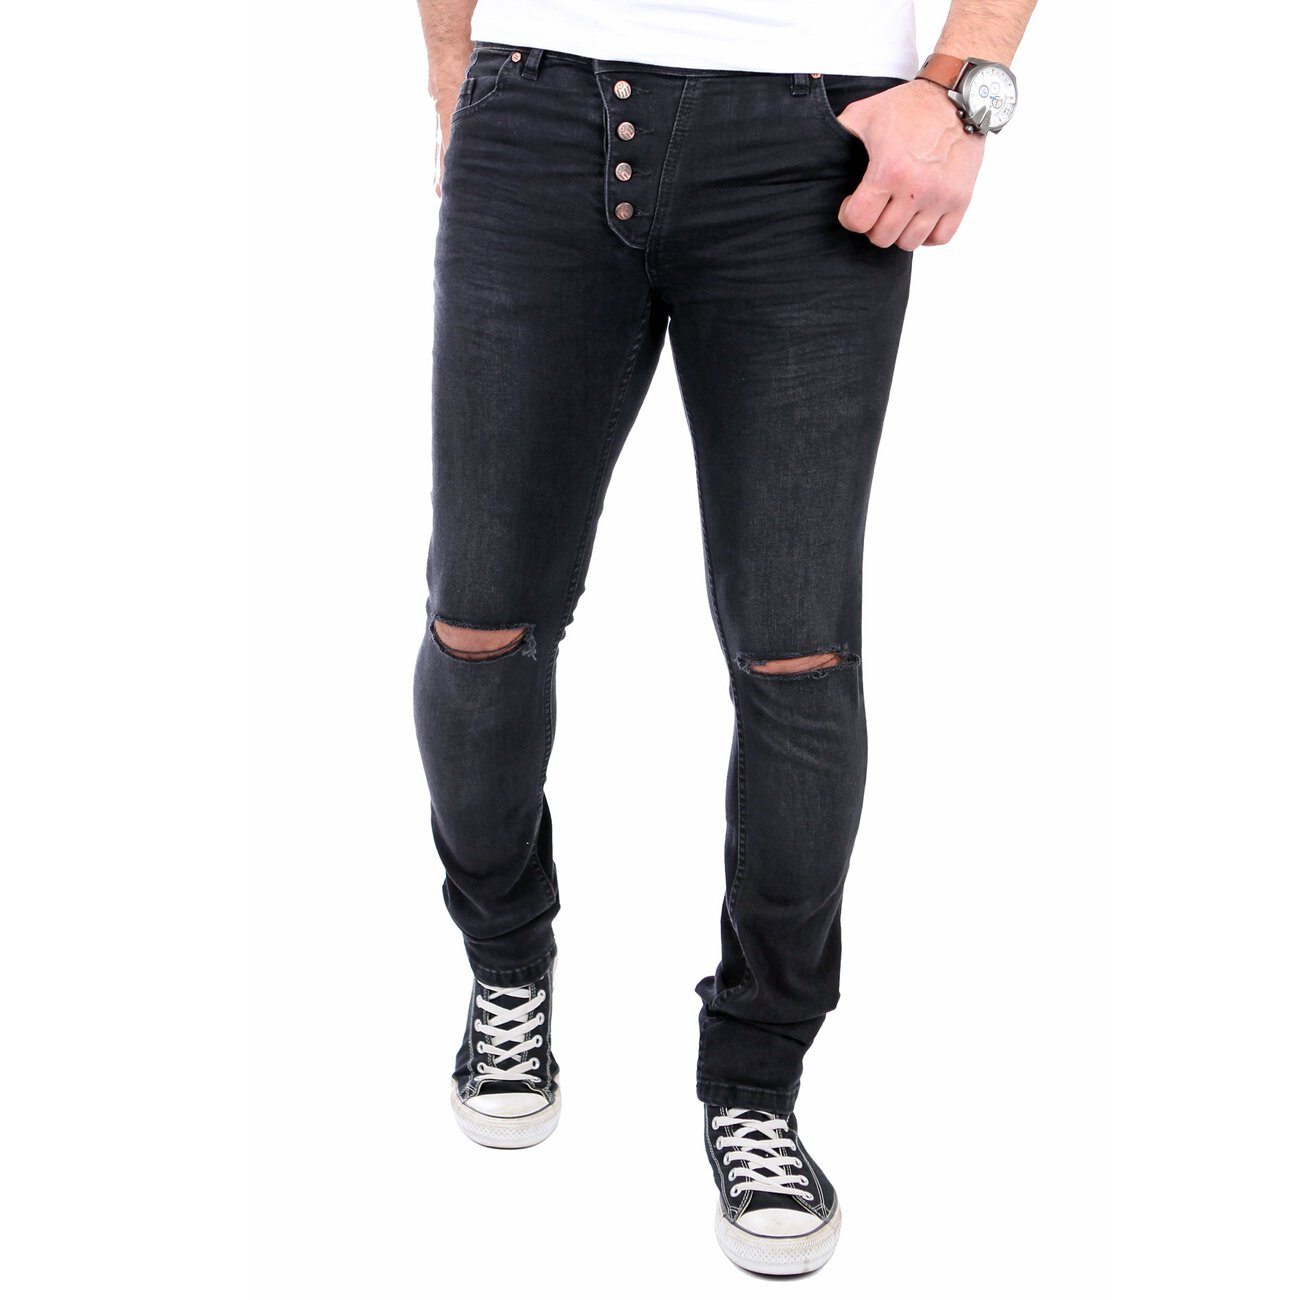 Denim Fit Hose 2067 Zerrissen Slim Reslad Rs Knie Jeans Herren Destroyed stxodCBhrQ